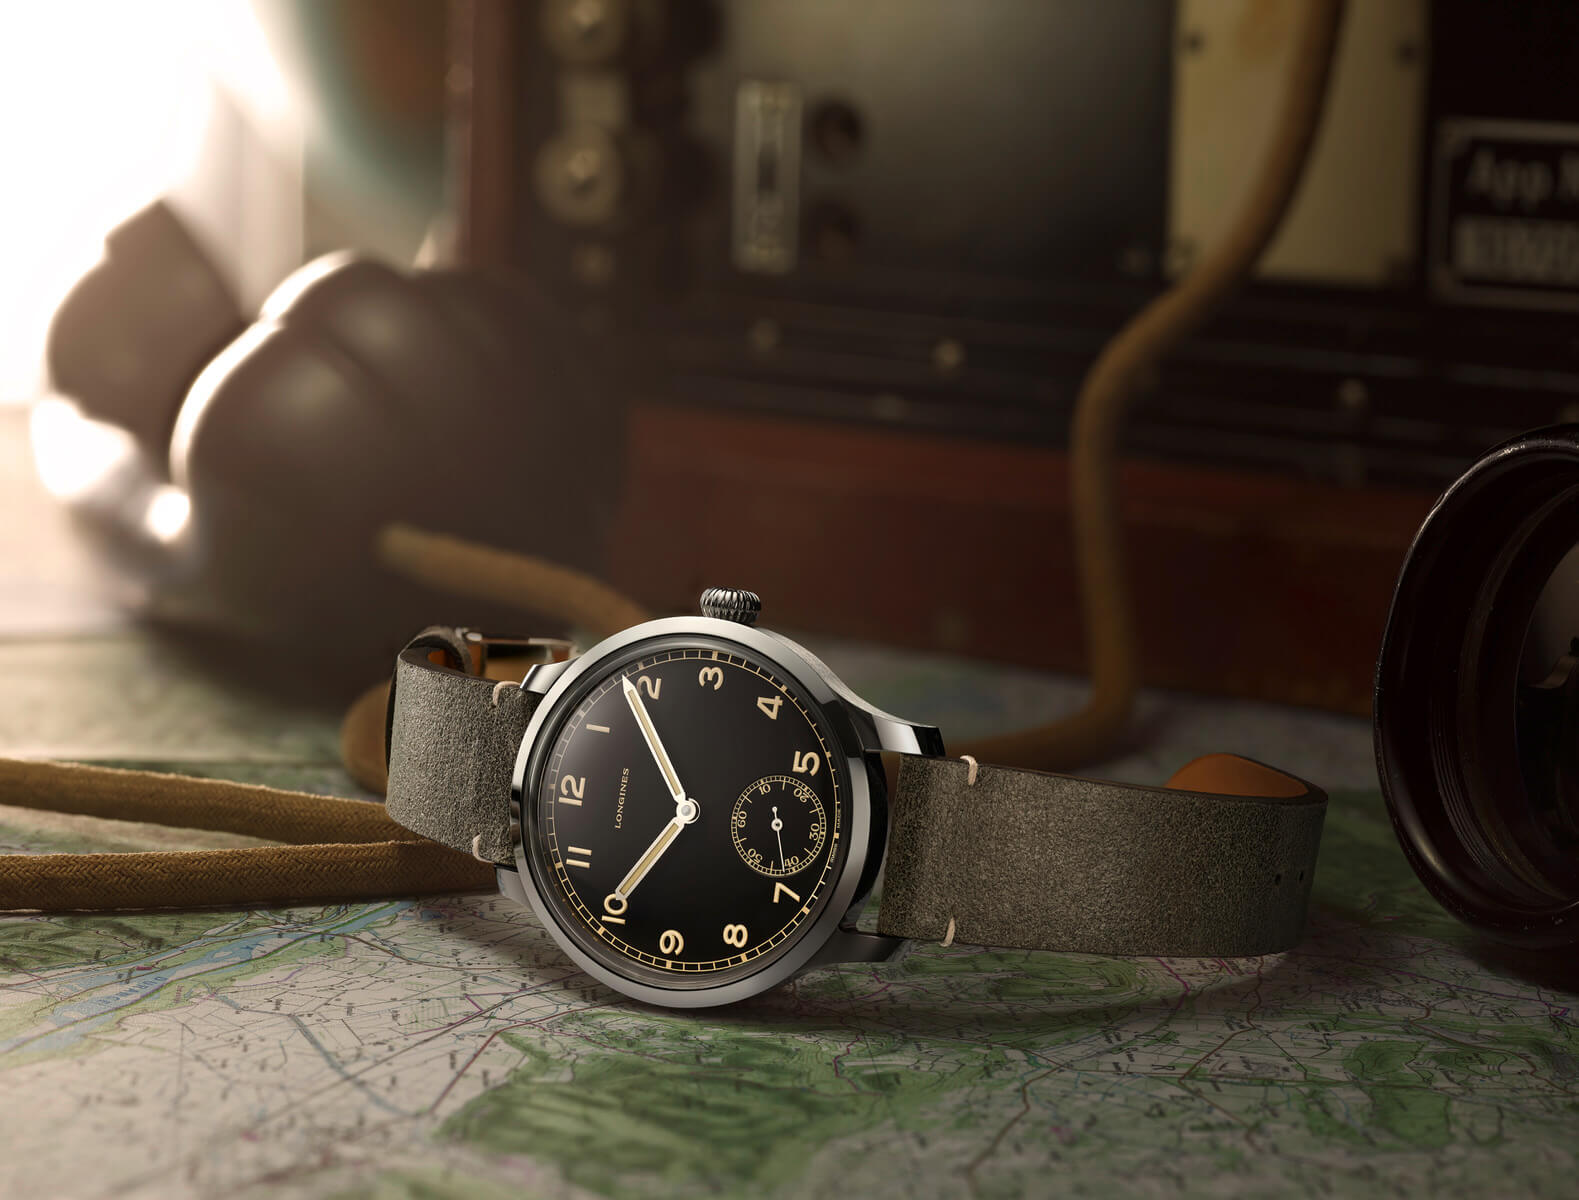 The Longines Heritage Military 1938 PR1